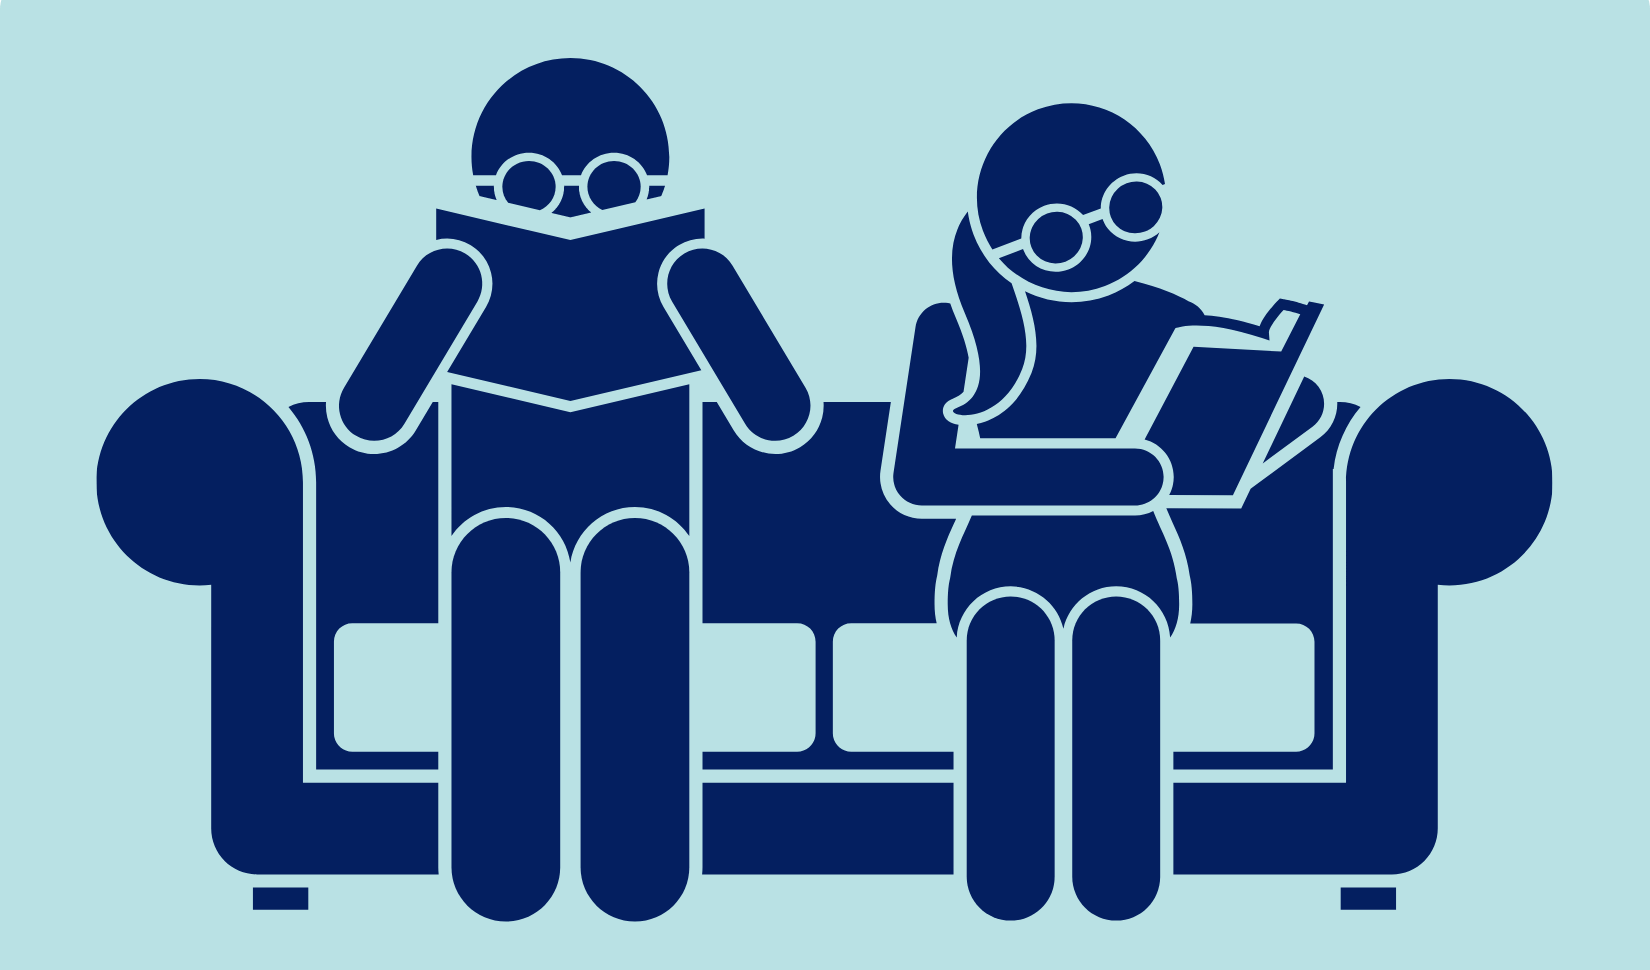 Reading together. Image designed in Canva by R. Gould